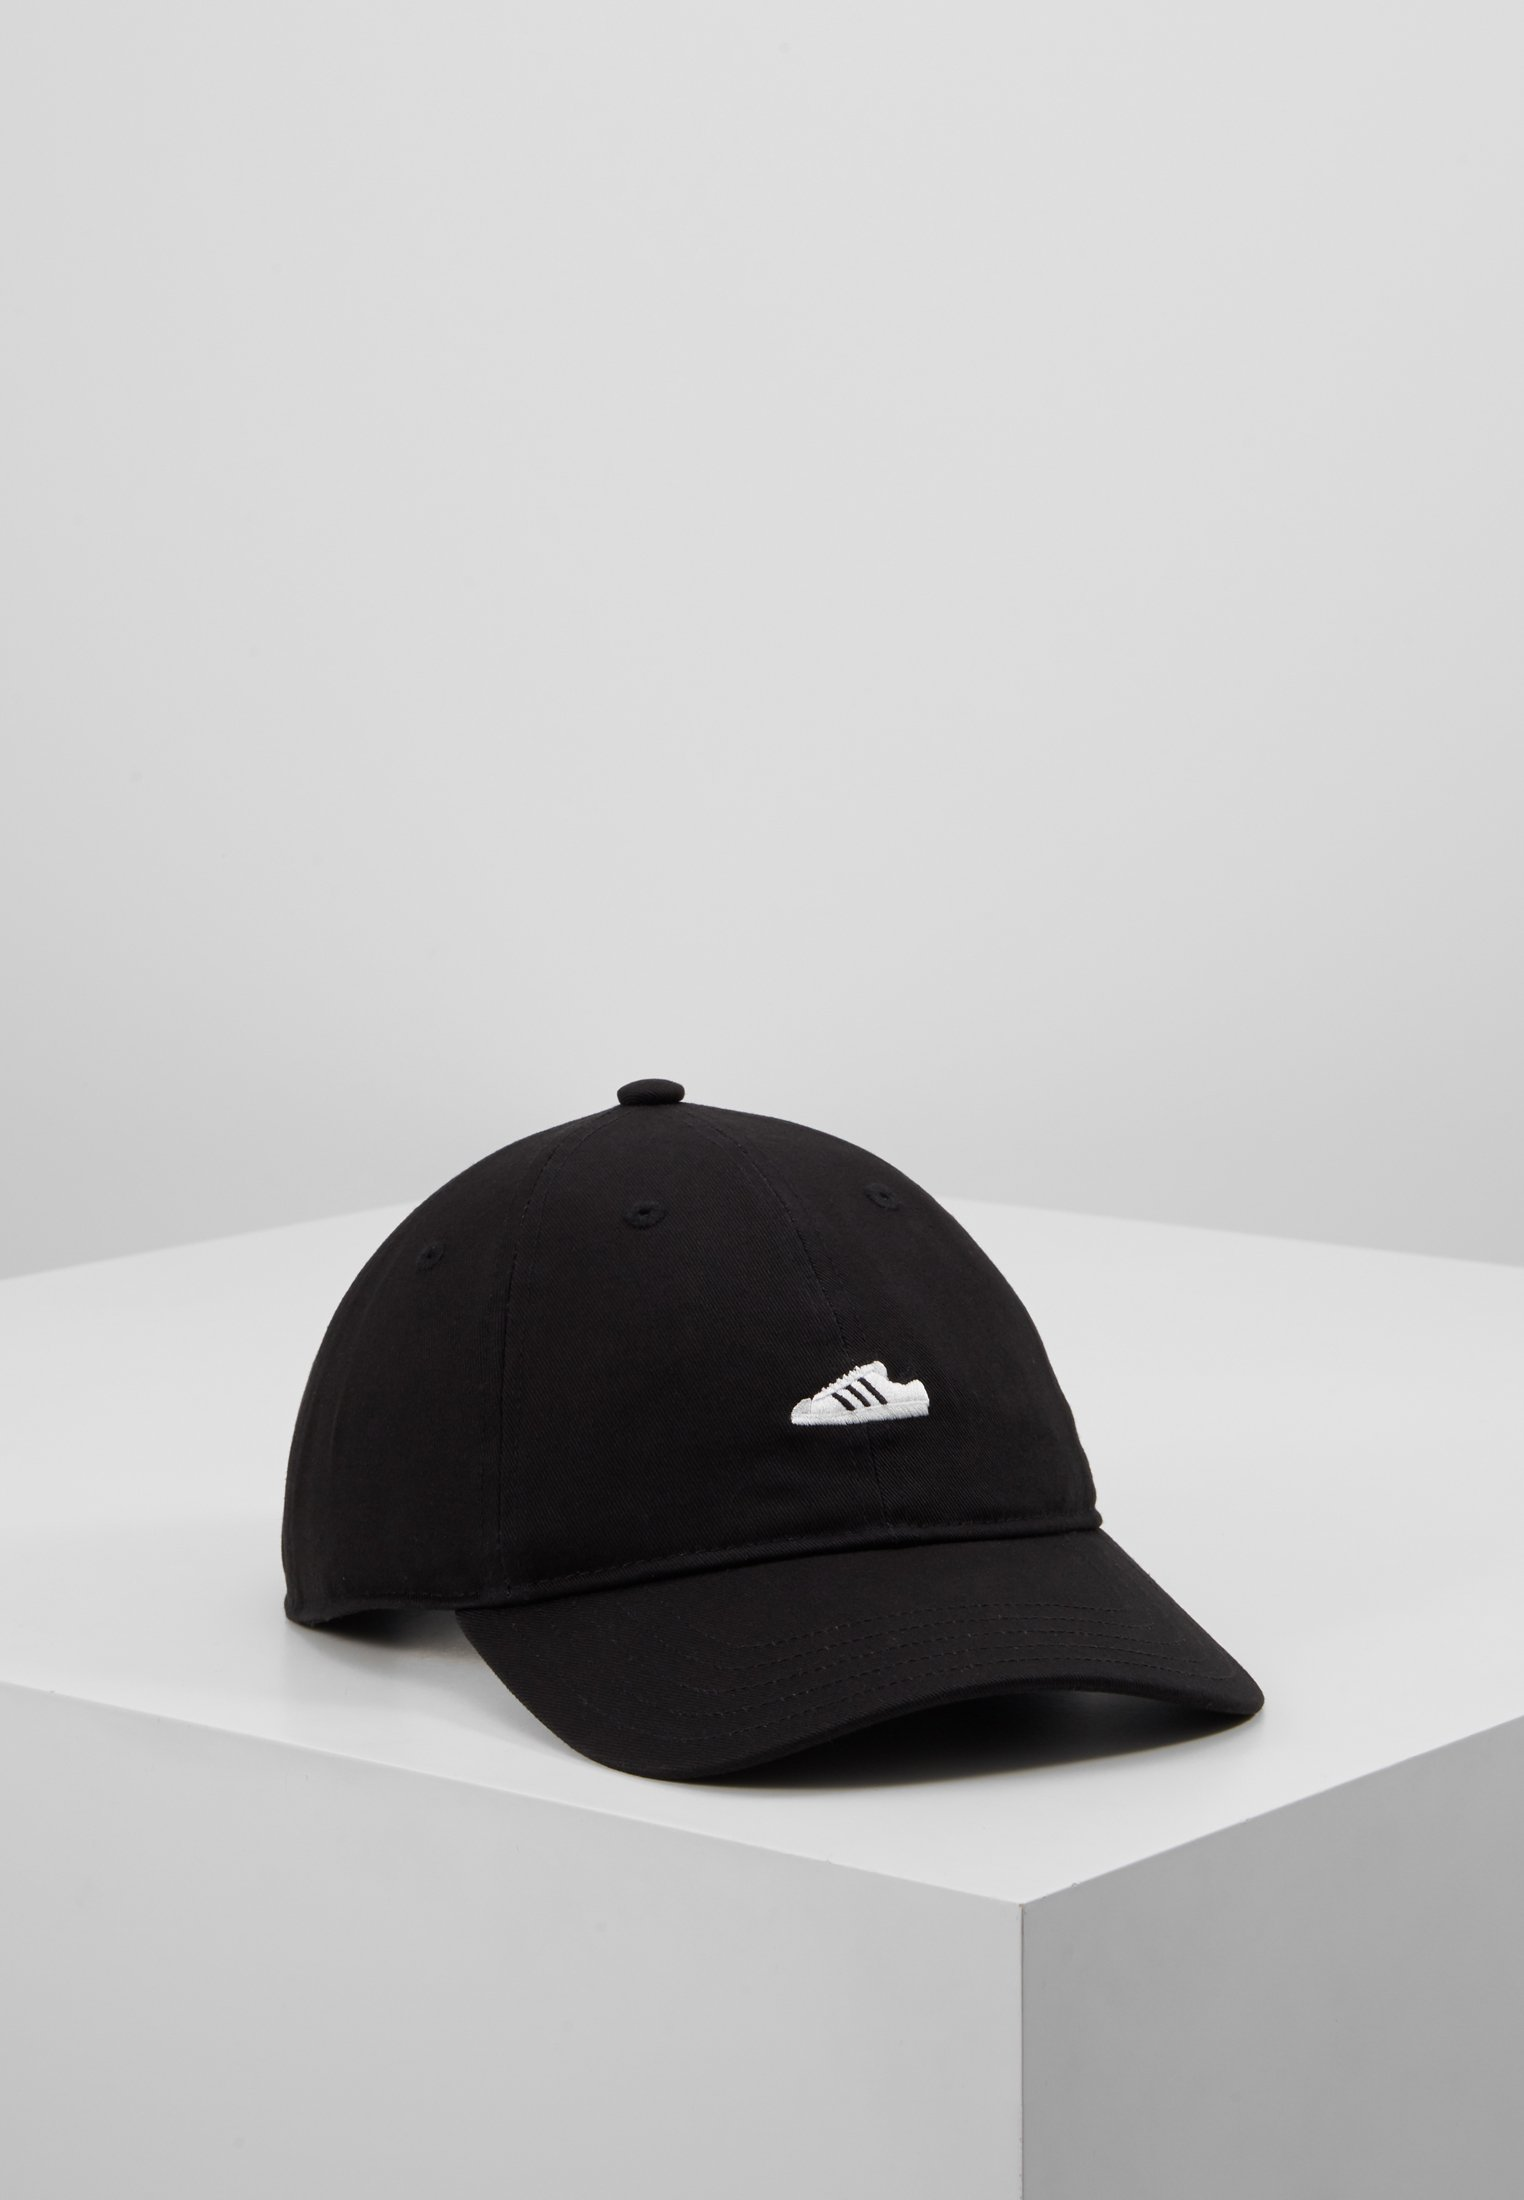 SuperstarCasquette white Adidas SuperstarCasquette Originals Originals SuperstarCasquette Black Adidas Black white Adidas Originals TkXZOPiu